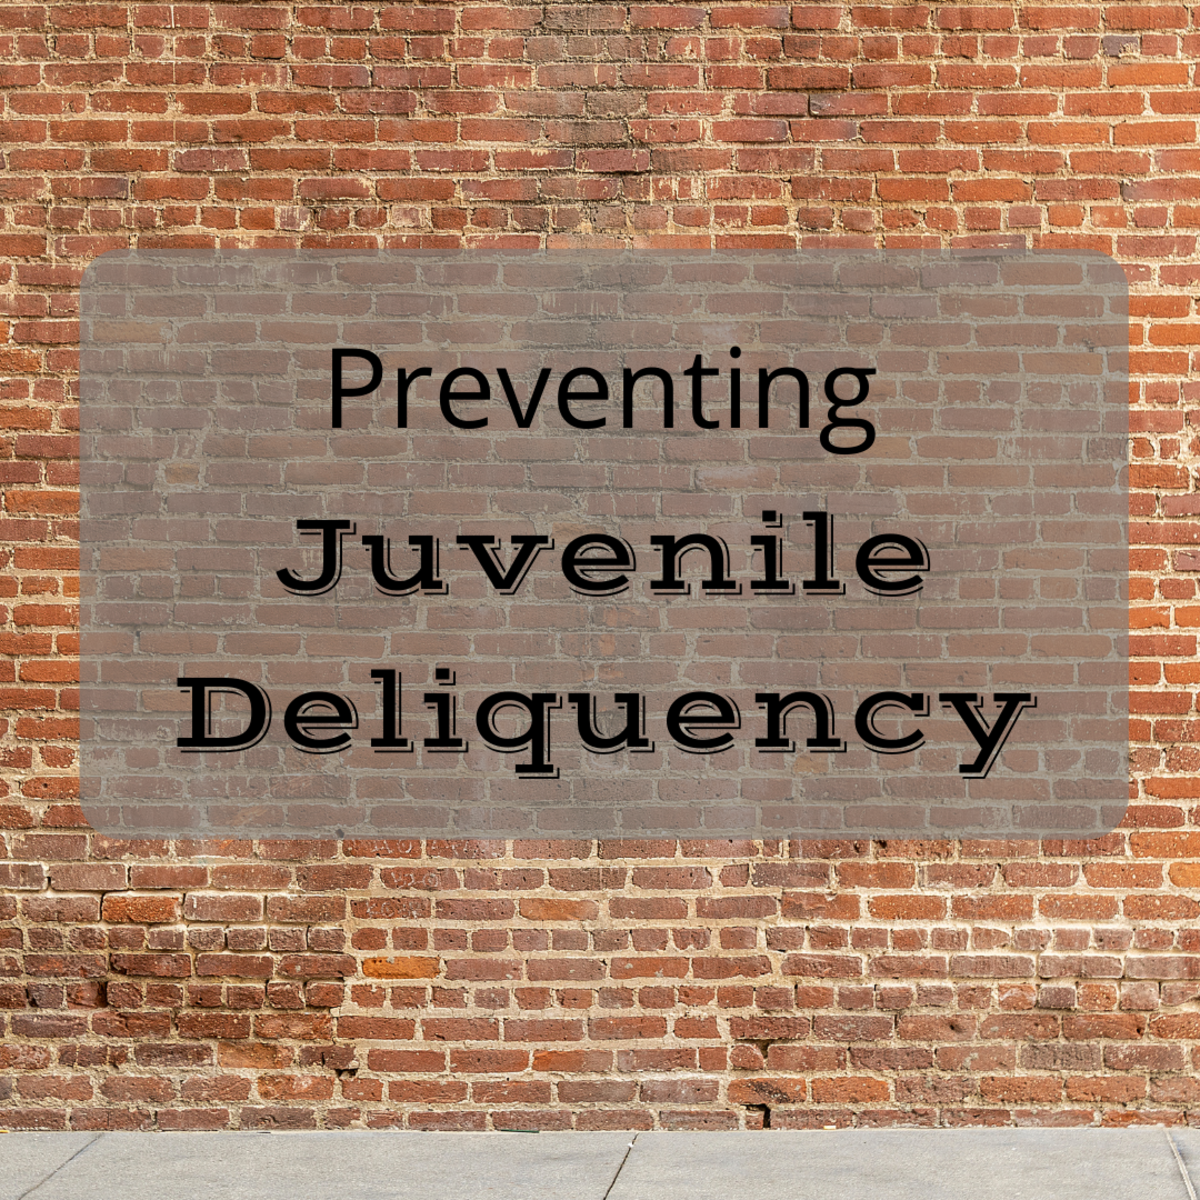 What can we as a society do to prevent and reduce delinquency?